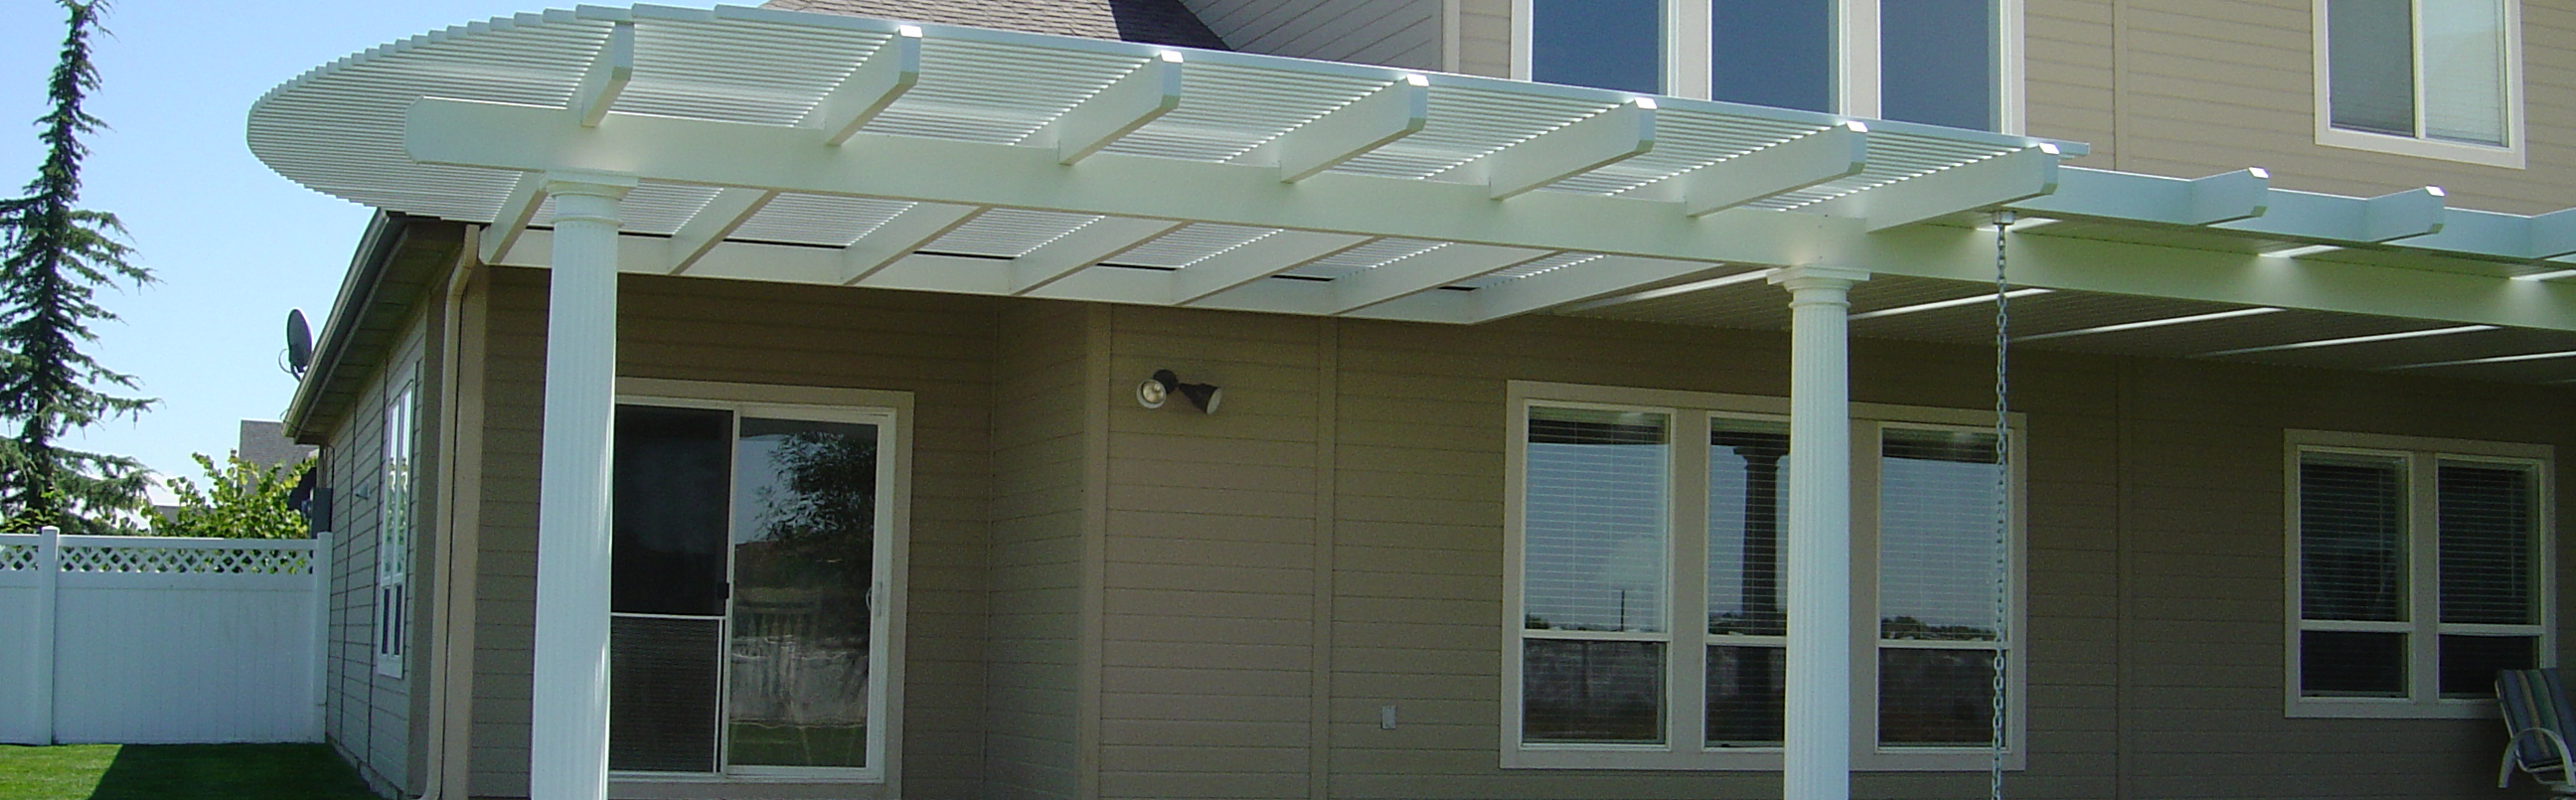 Patio Covers   Sunrooms Enclosures @ Patio Covers Unlimited